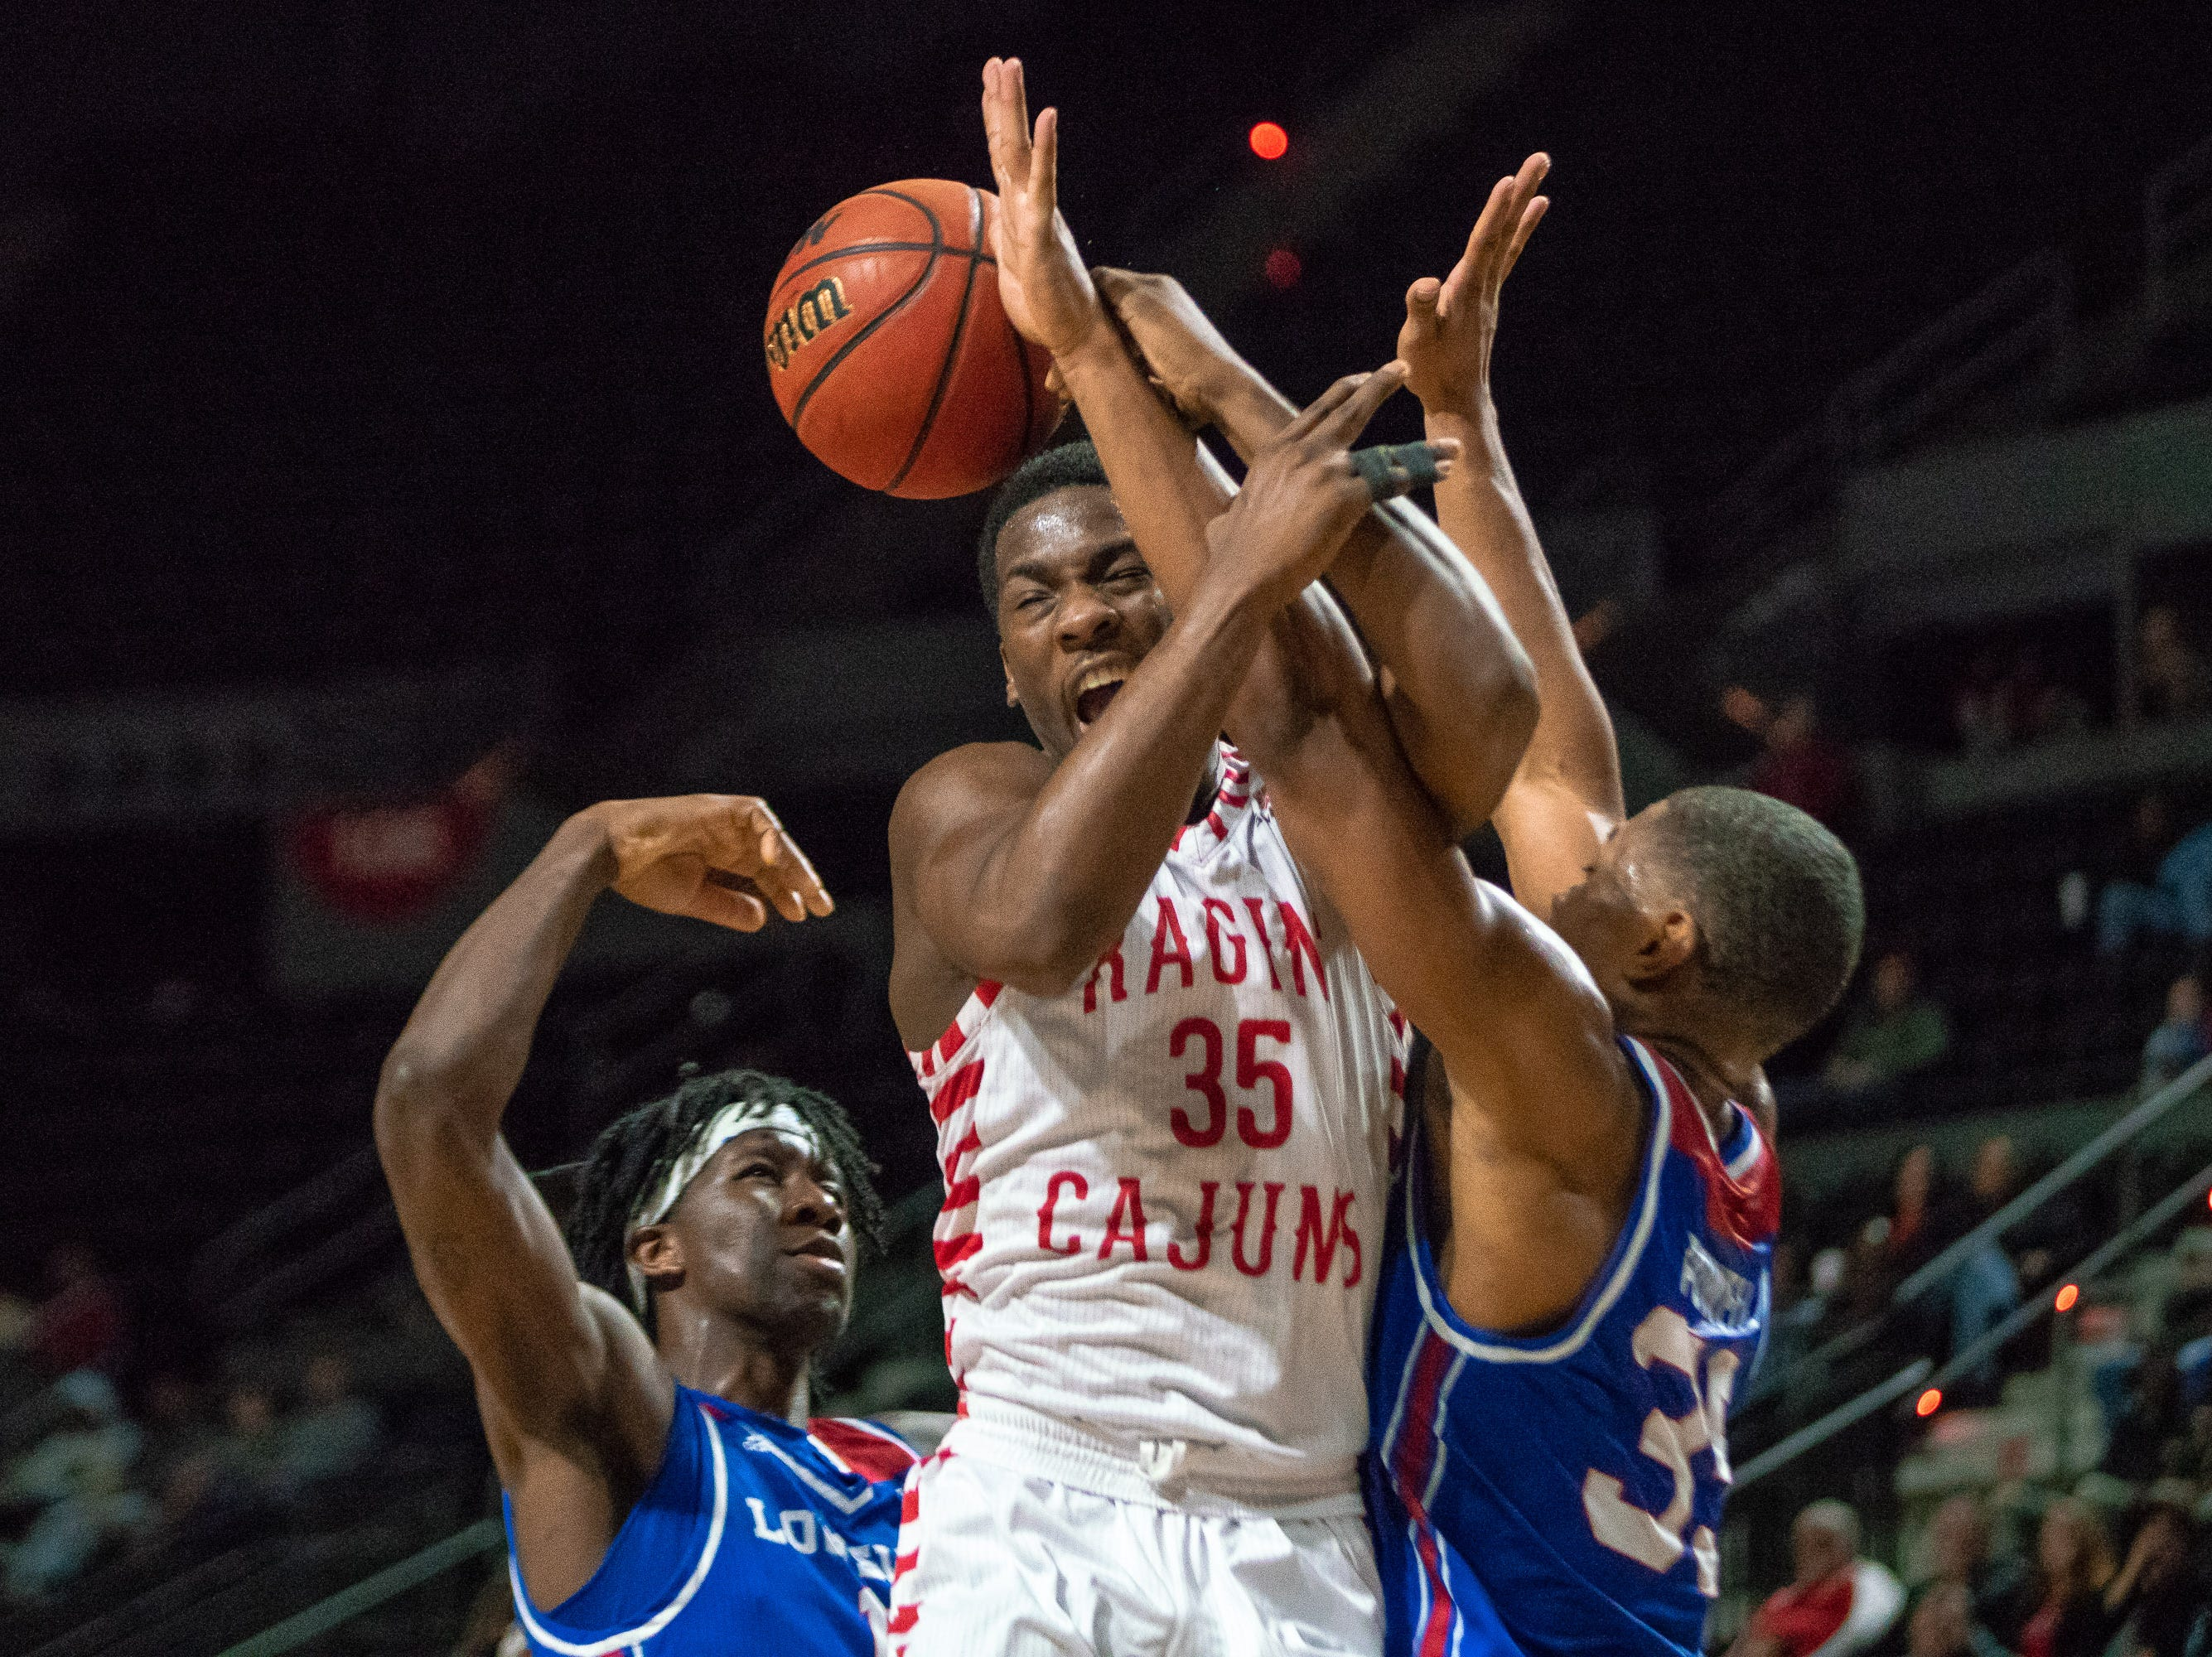 UL's Marcus Stroman gets fouled while going to the goal as the Ragin' Cajuns take on the LA Tech Bulldogs at the Cajundome on December 15, 2018.